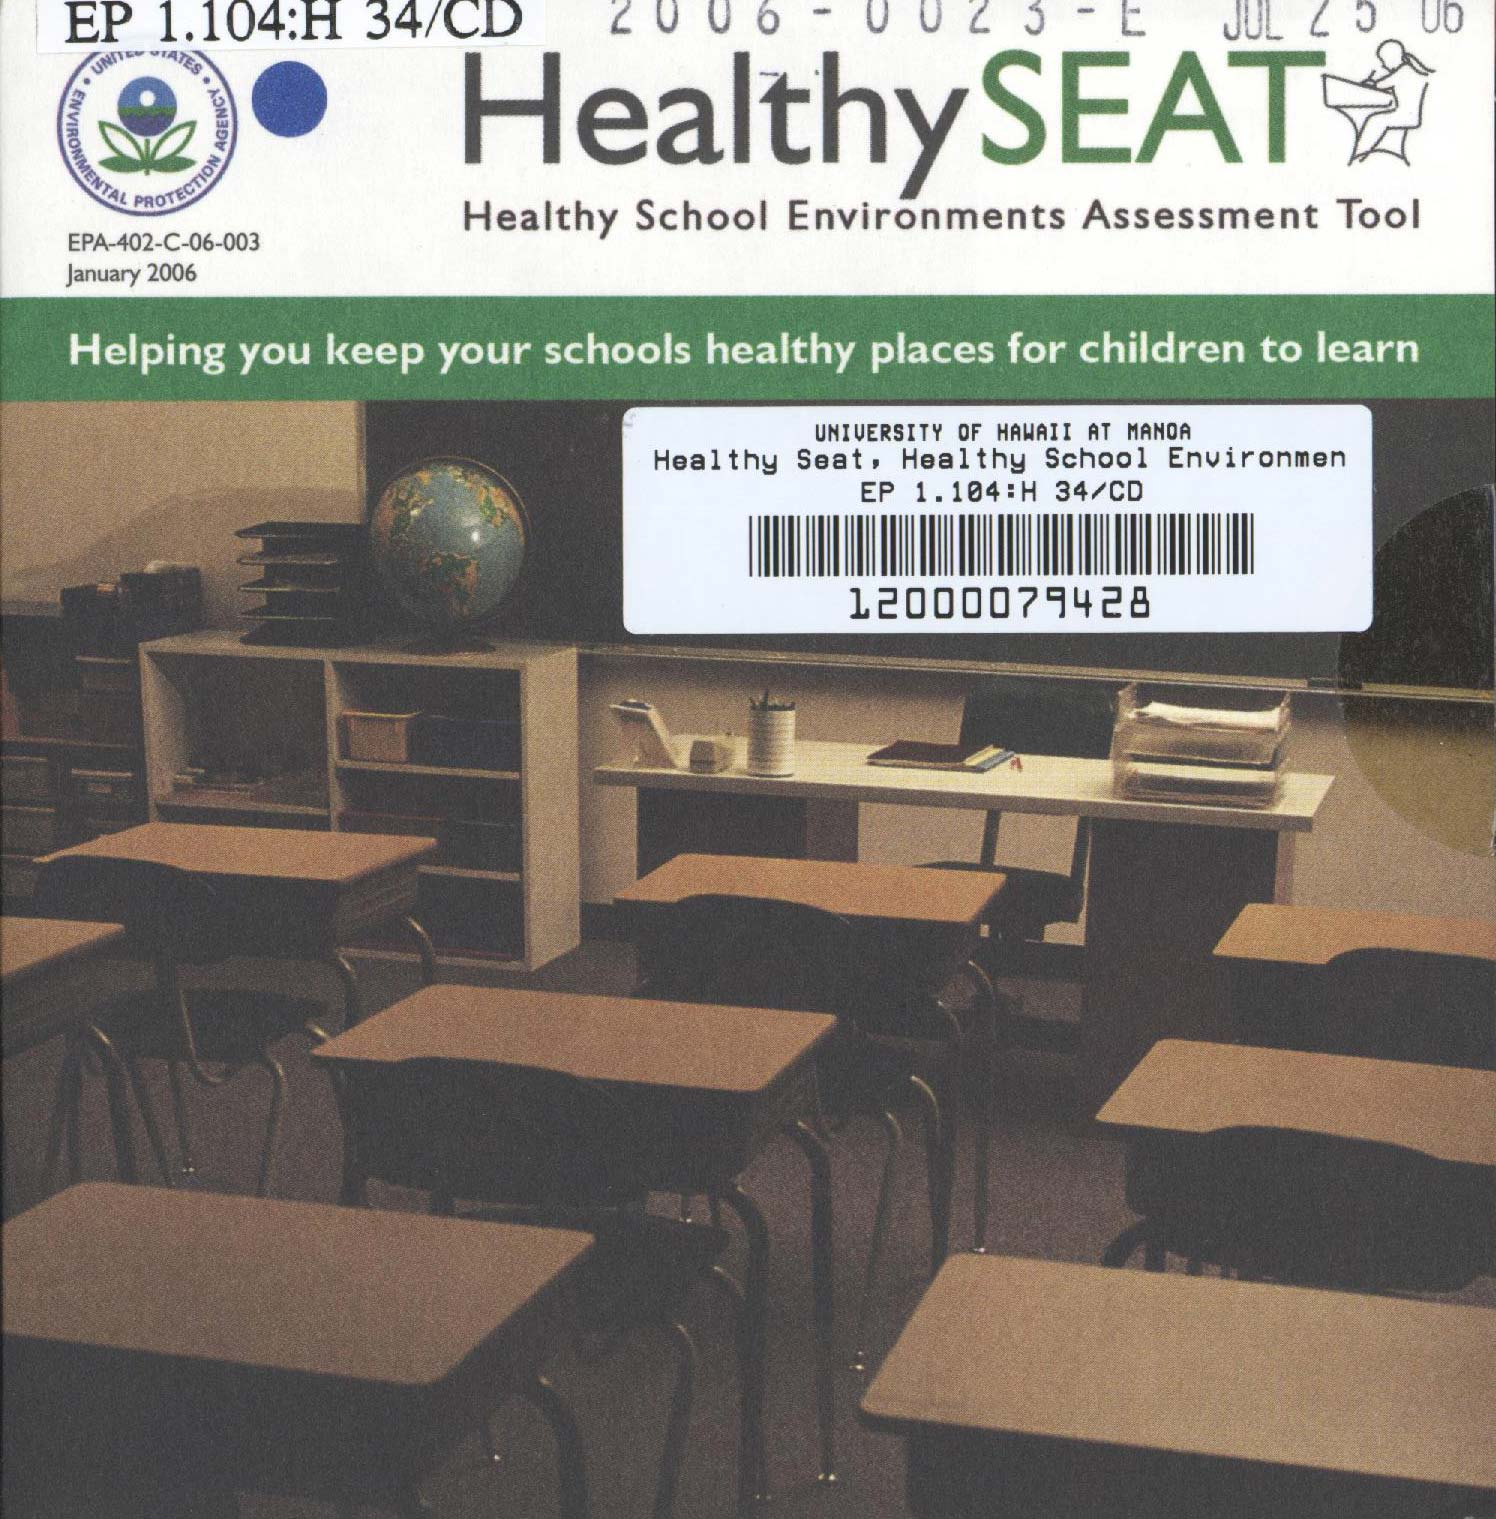 Image of CD-ROM cover showing a classroom with desks and chairs